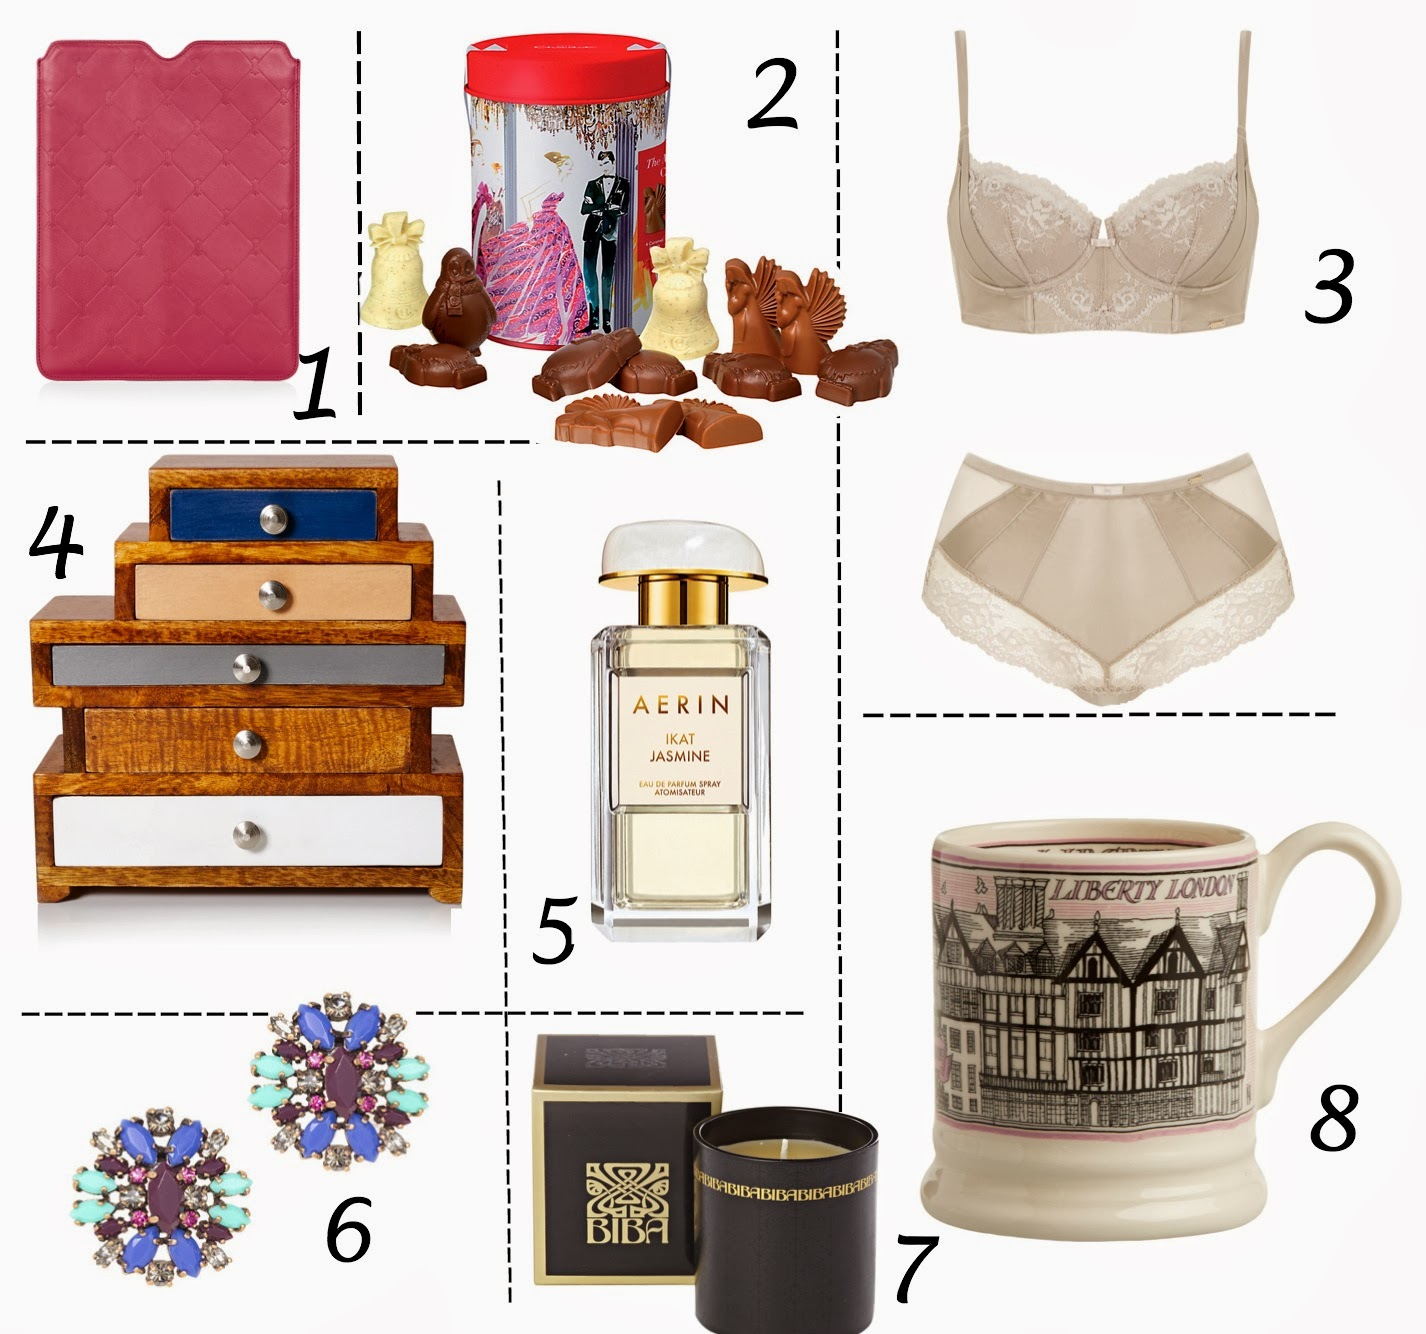 mamasVIB | V. I. BUYS: My BIG Christmas Gift Guide Part 1 for MUM, christmas gifts, gift guide, presents for mum, fit ideas, xmas gifts, what mum wants for christmas